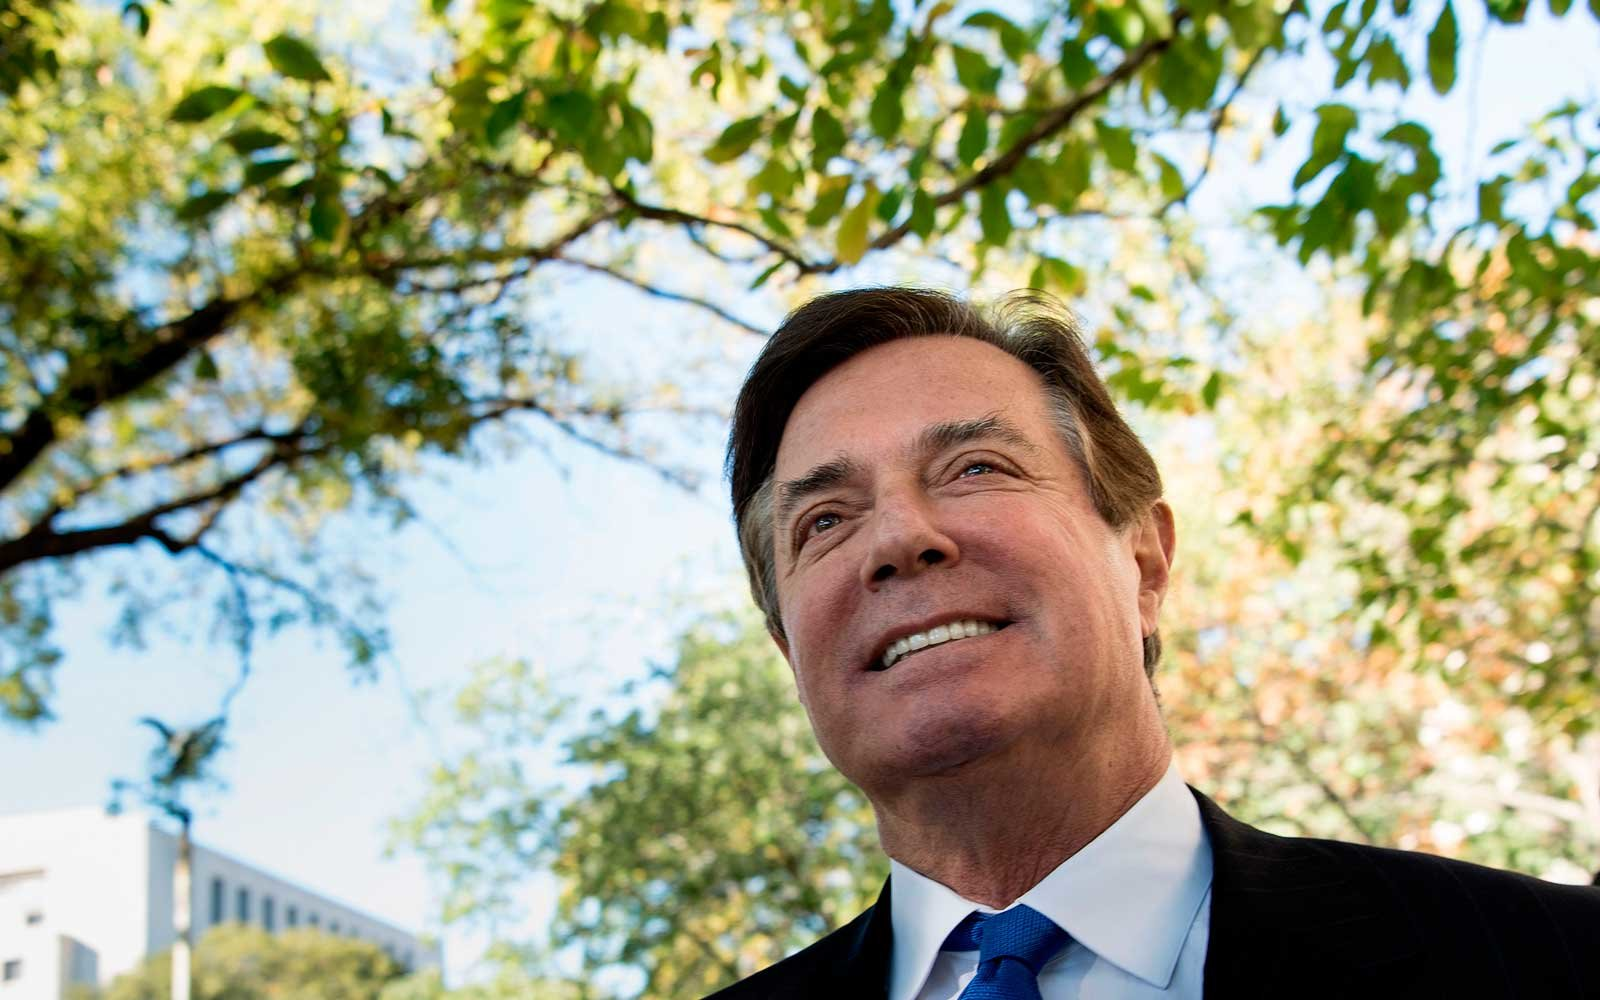 Paul Manafort is charged with conspiracy